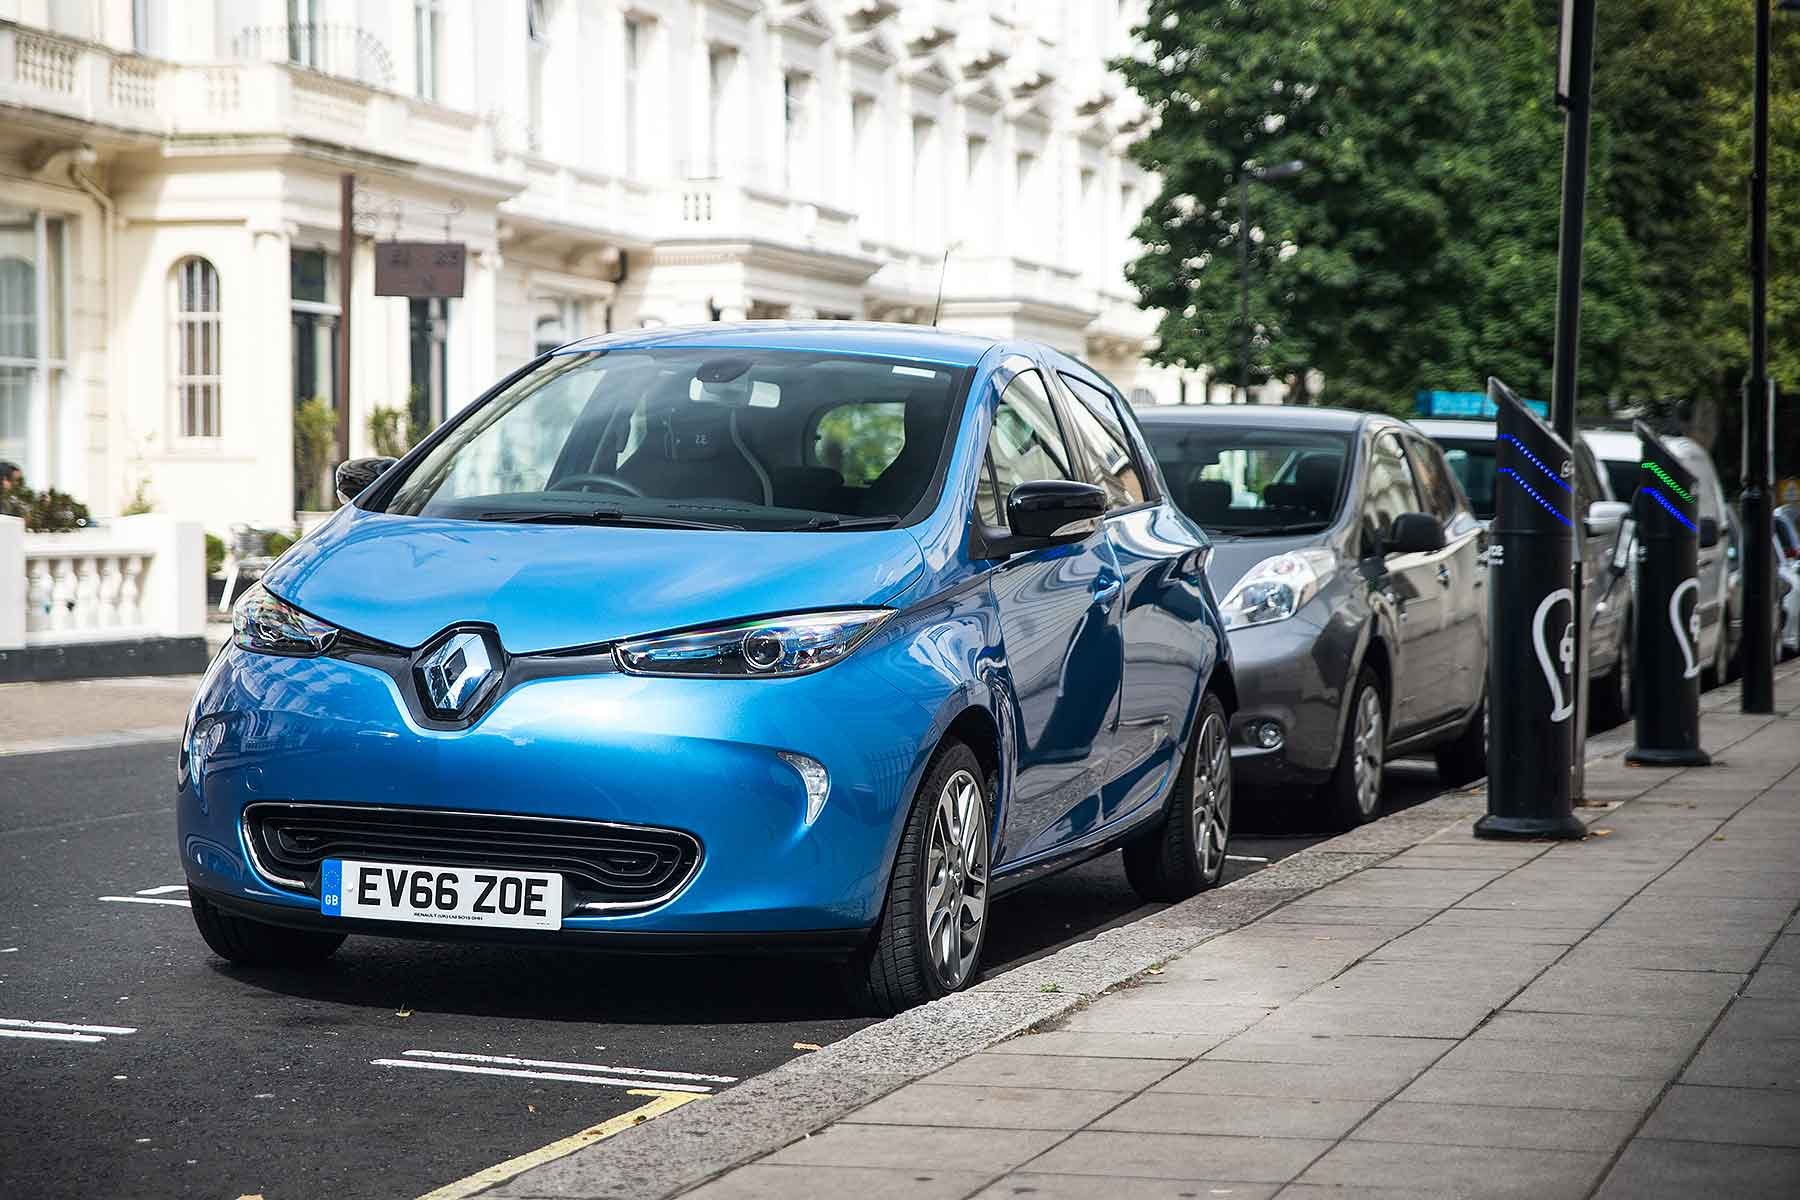 This Is Despite Renault One Of The Gest Brands For Electric Cars Offering Some Ealing 199 A Month Deals On Its All Zoe